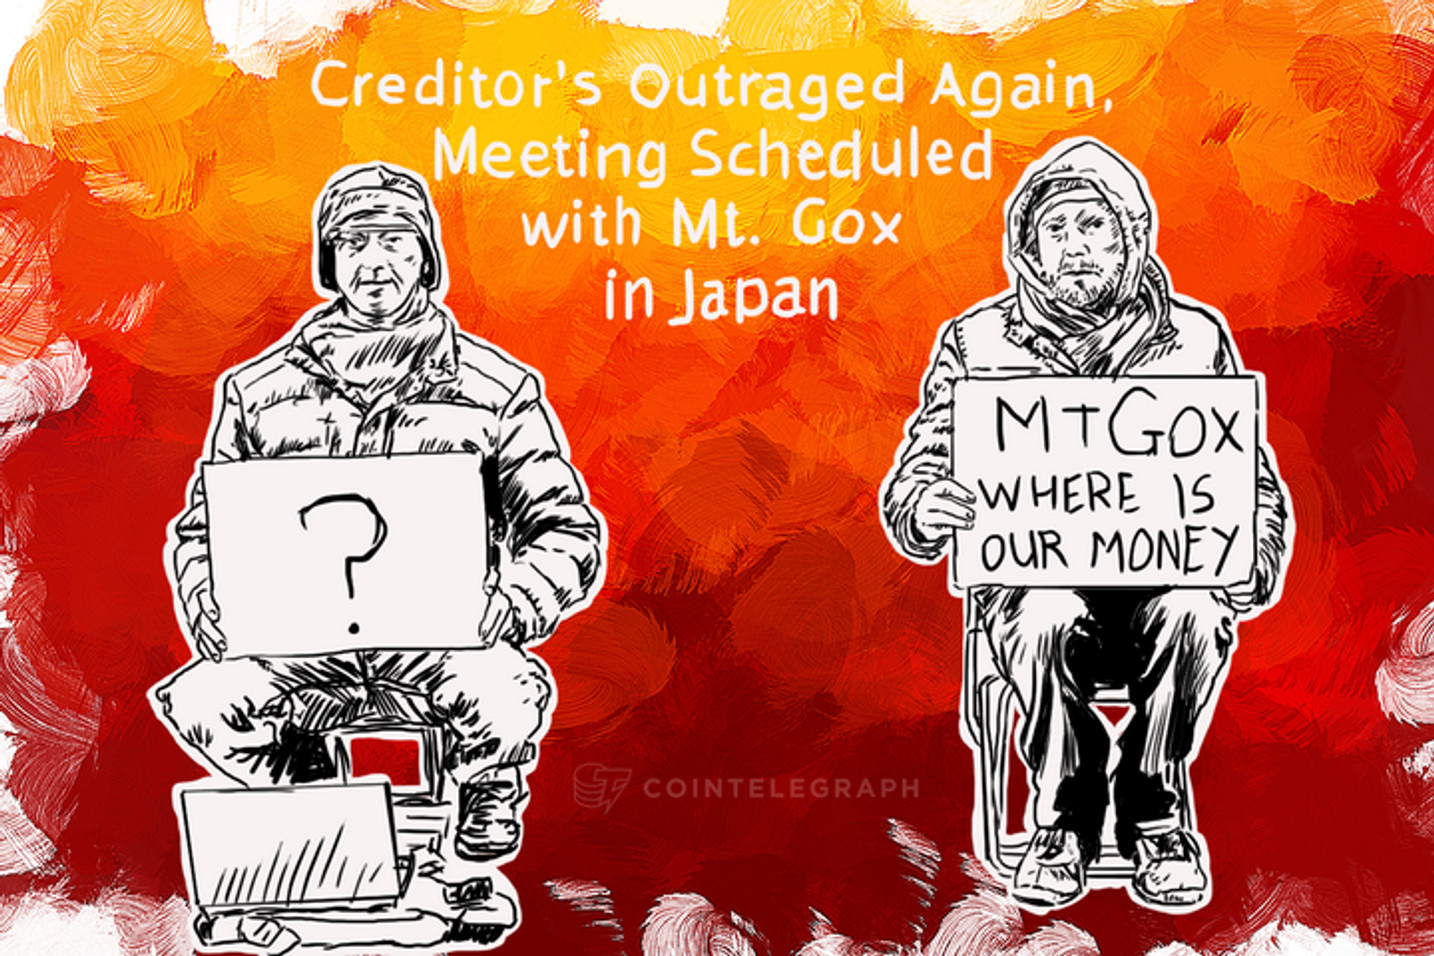 Creditor's Outraged Again, Meeting Scheduled with Mt. Gox in Japan